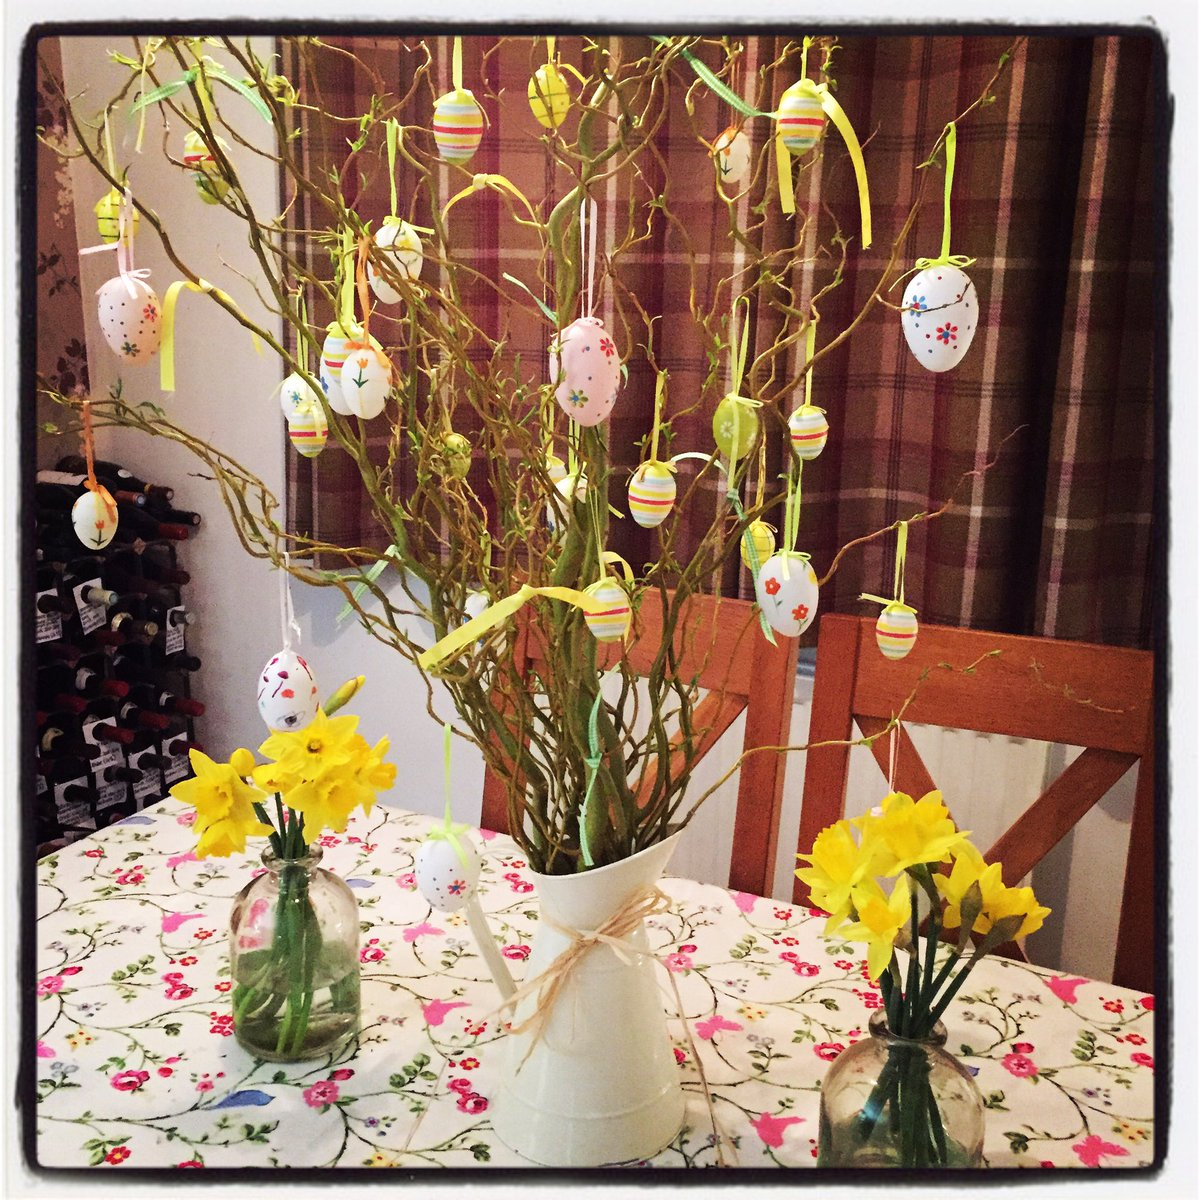 Just constructed my Easter tree, love a bit of Spring & colour in my house! https://t.co/TKOLCTRH19